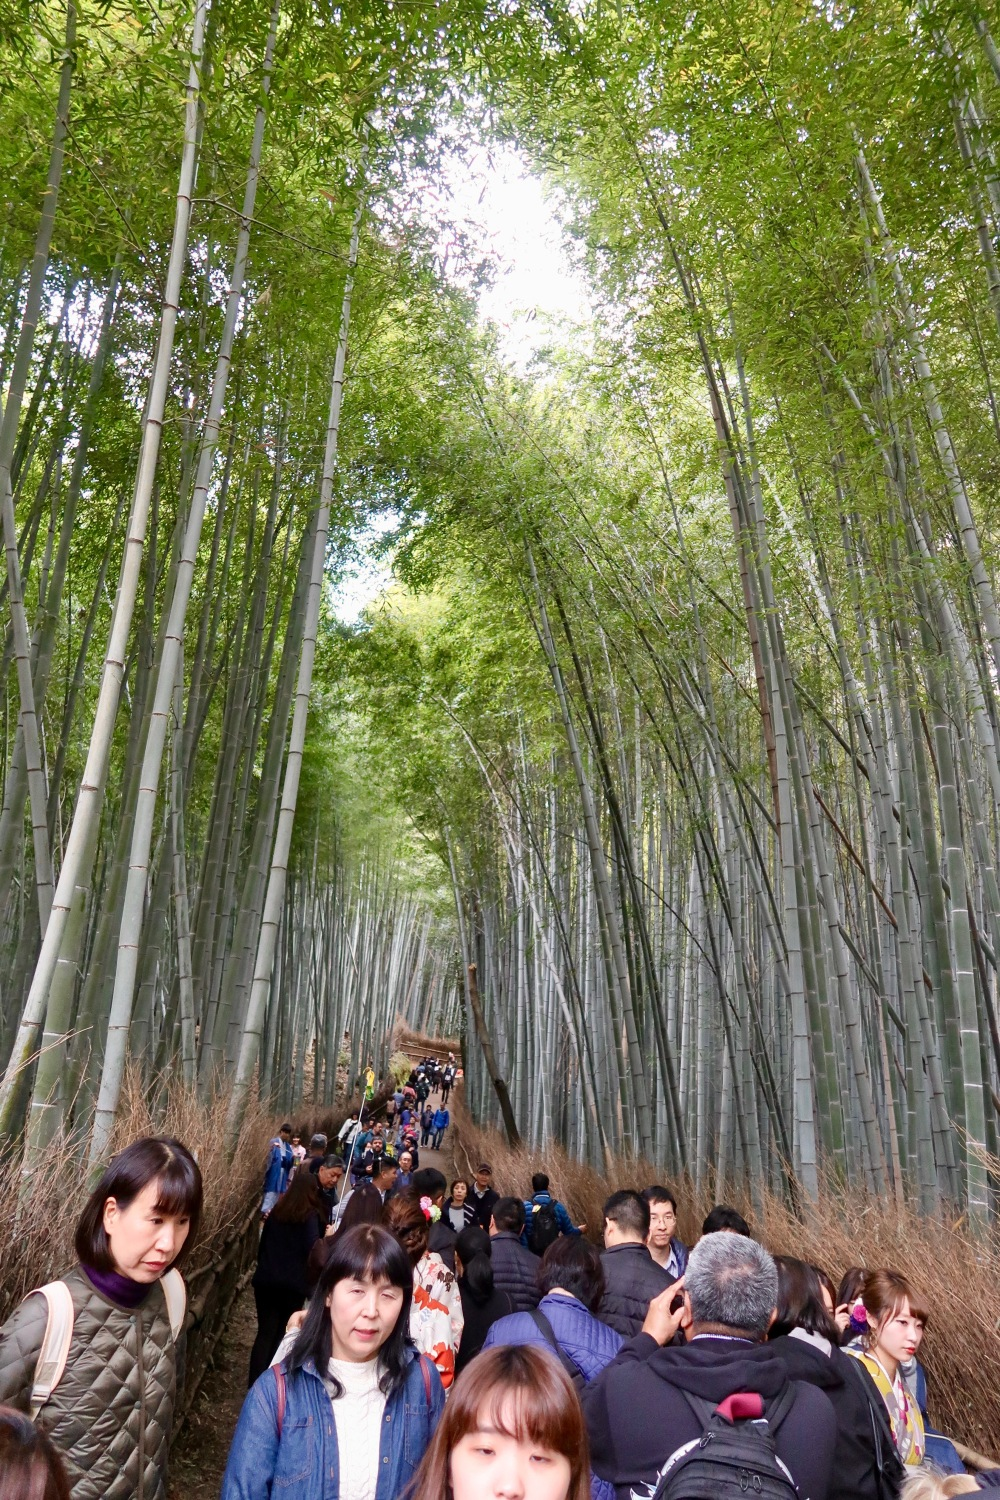 A river of people run through the Bamboo Forest